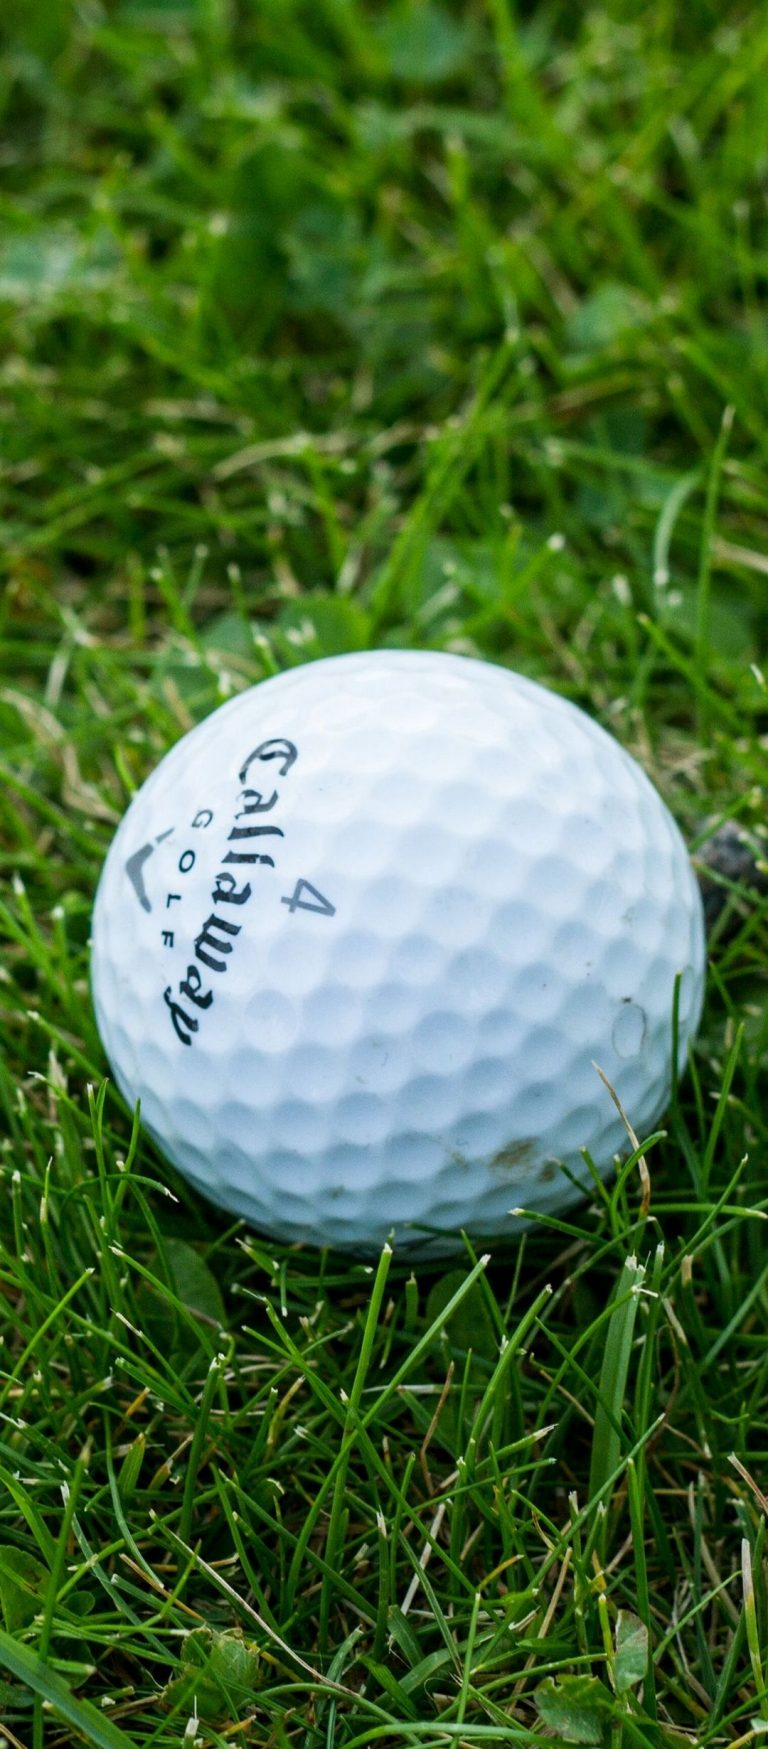 Golf Ball Grass 1080x2460 768x1749